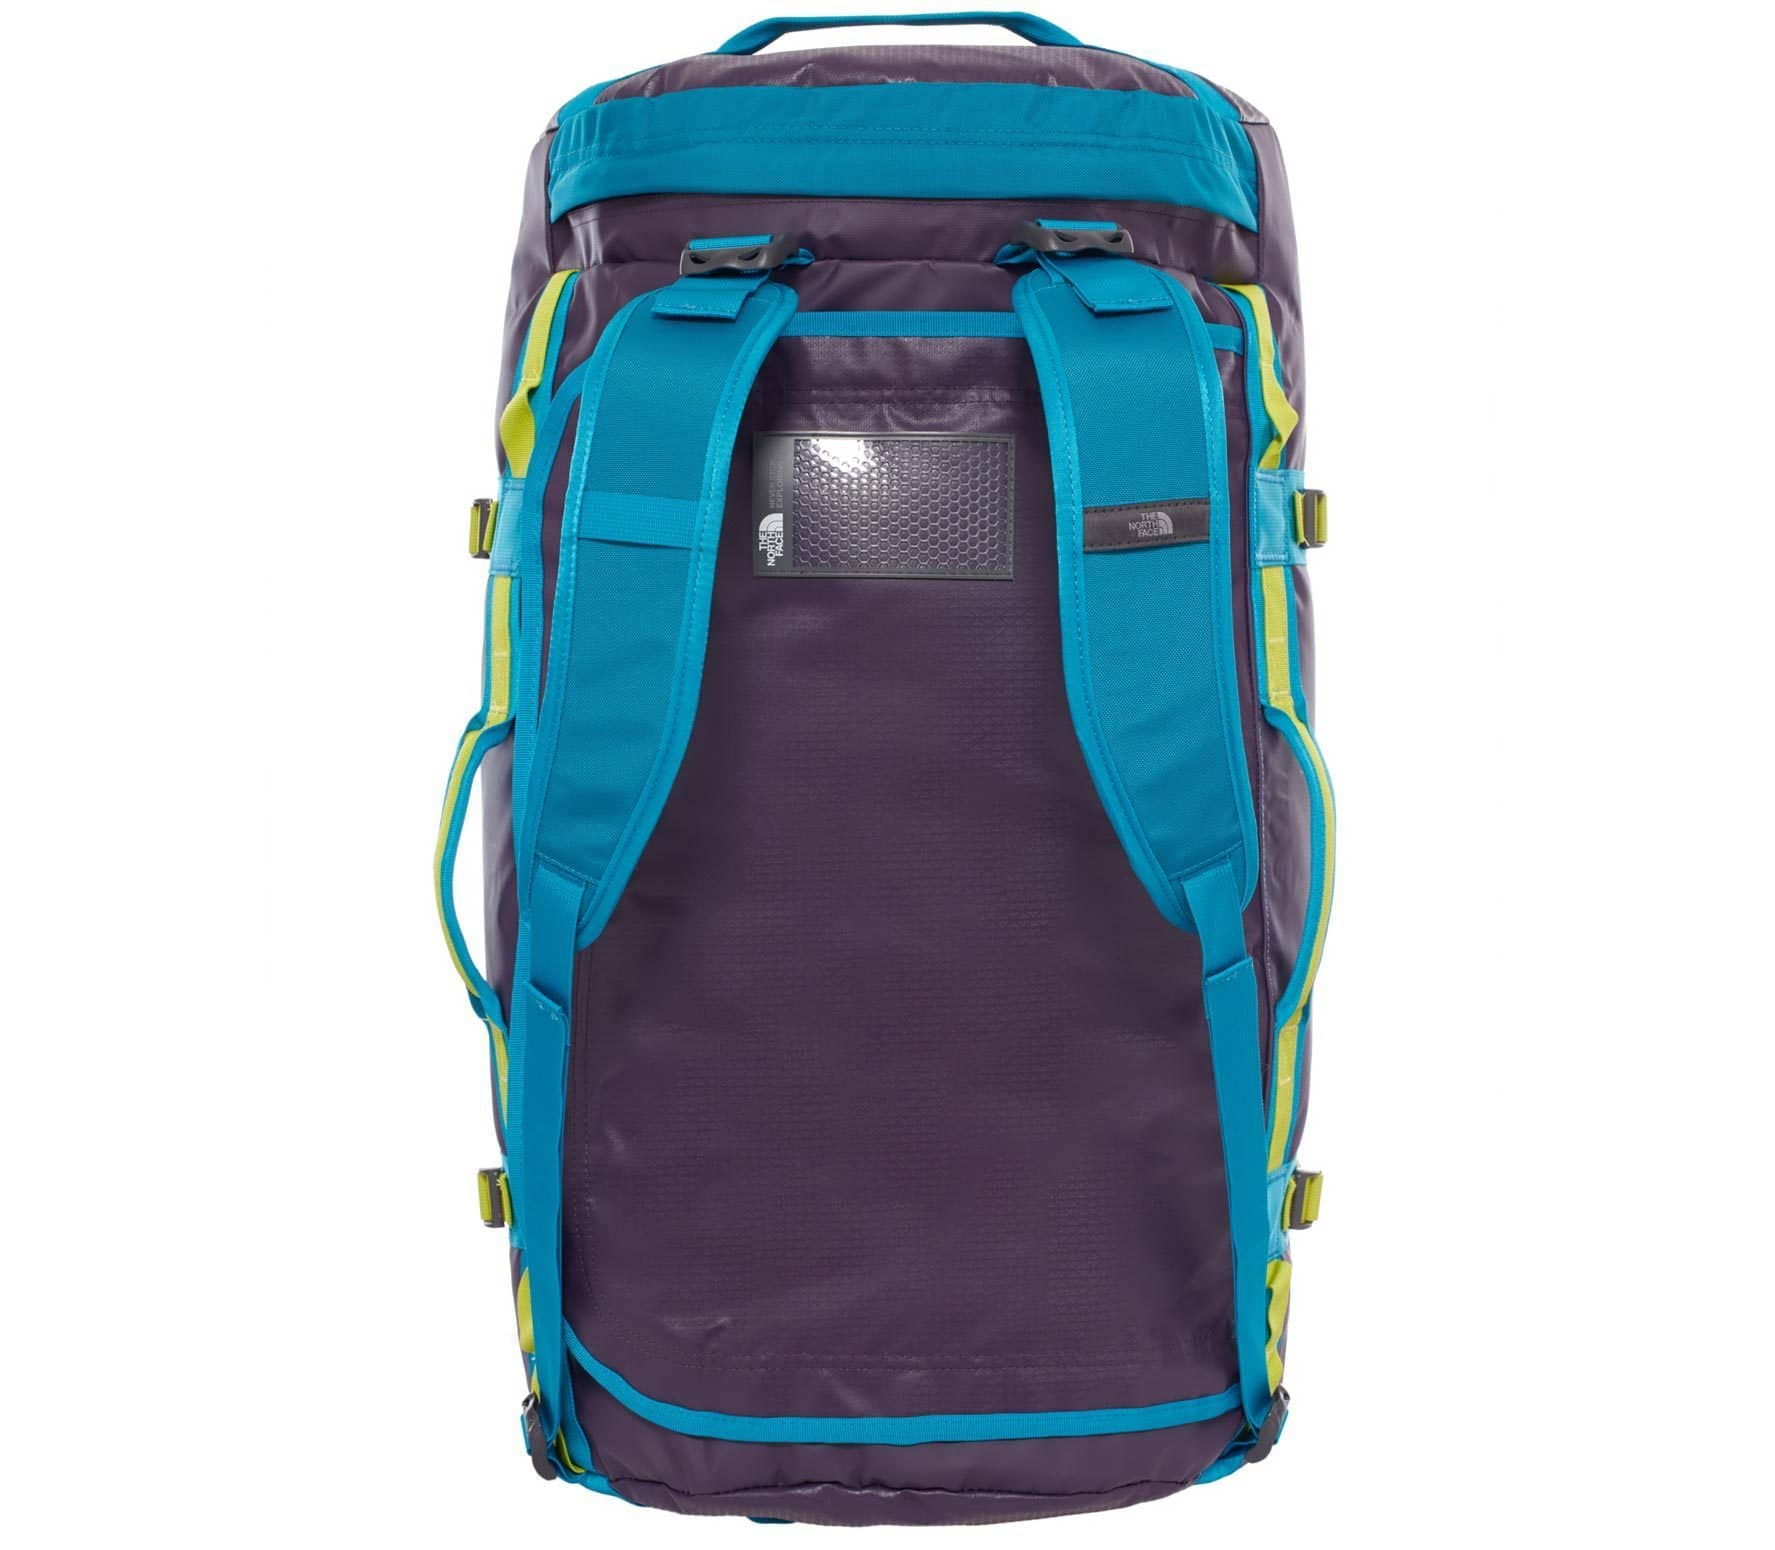 the north face base camp molleton l bag bleu fonc turquoise acheter en ligne keller sports. Black Bedroom Furniture Sets. Home Design Ideas